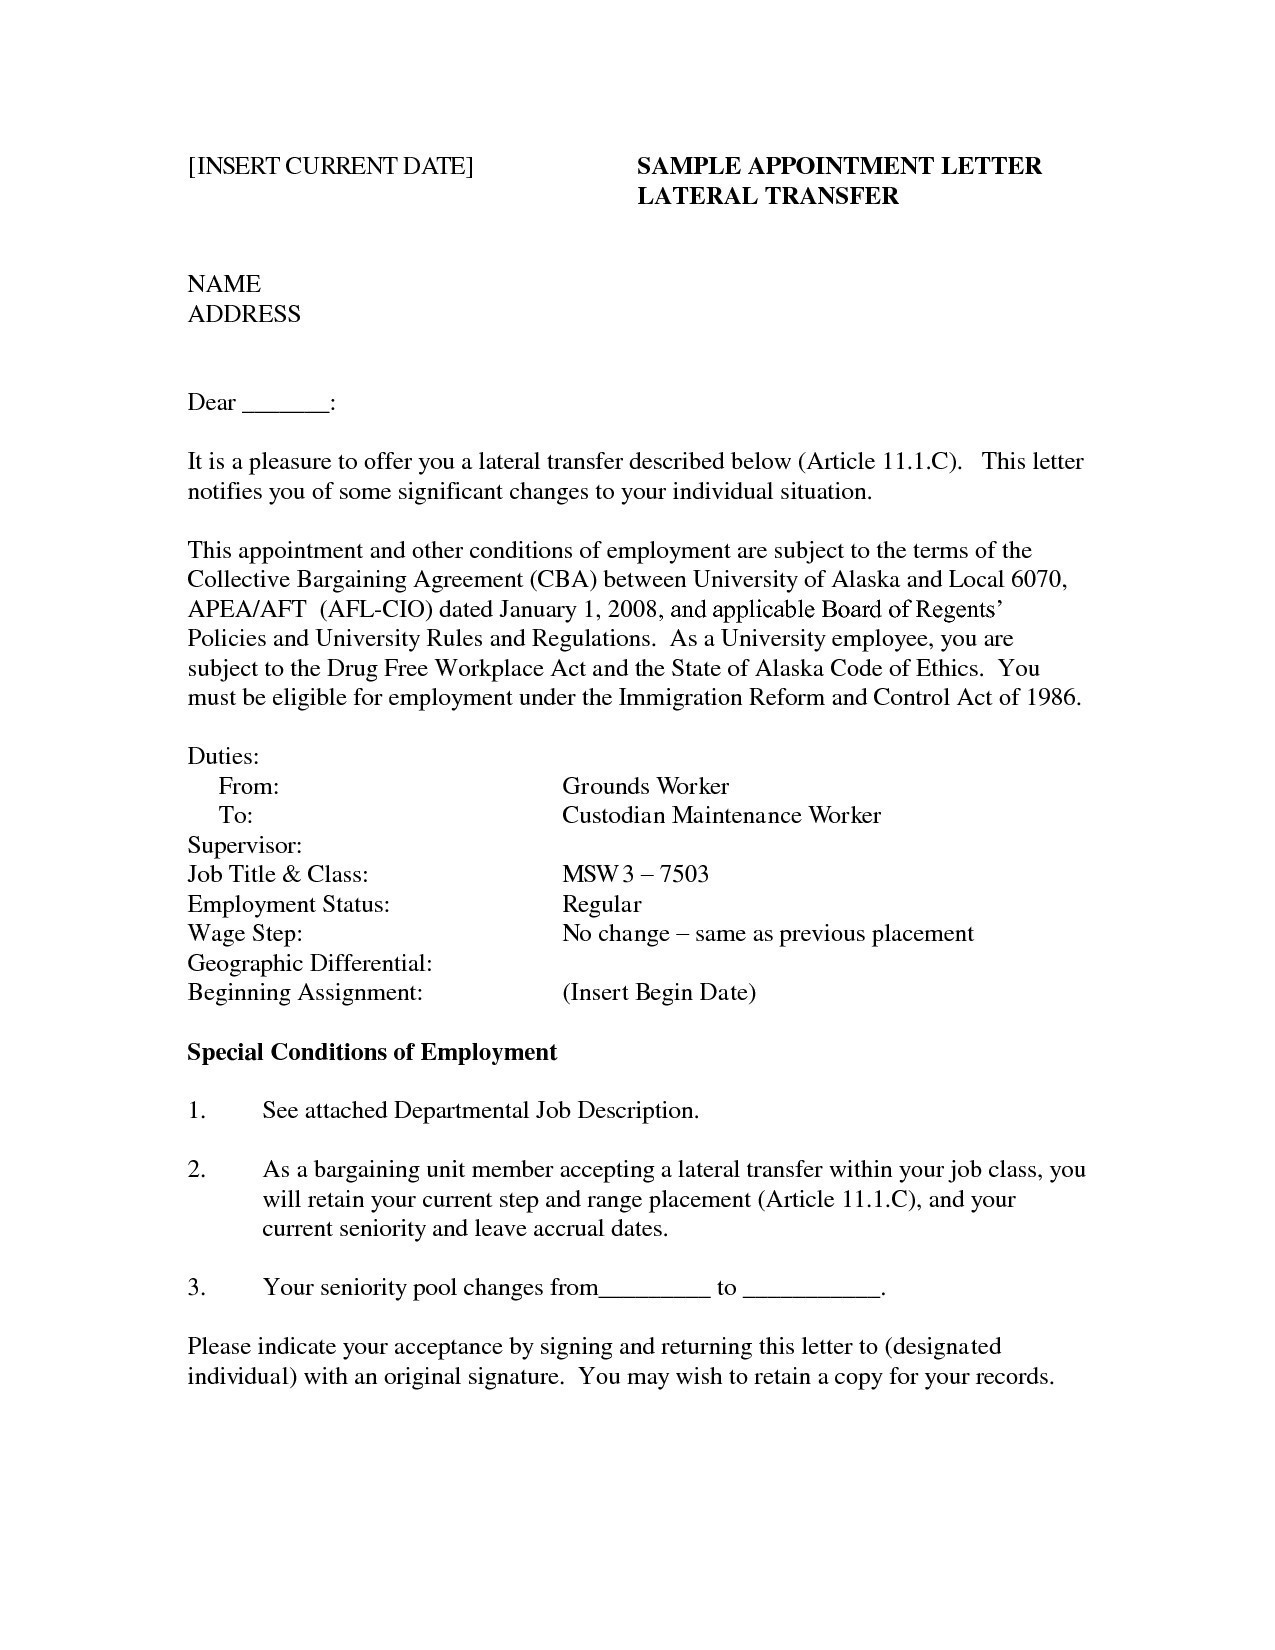 Credentialing Approval Letter Template - New Job Application Letter format Template Copy Cover Letter